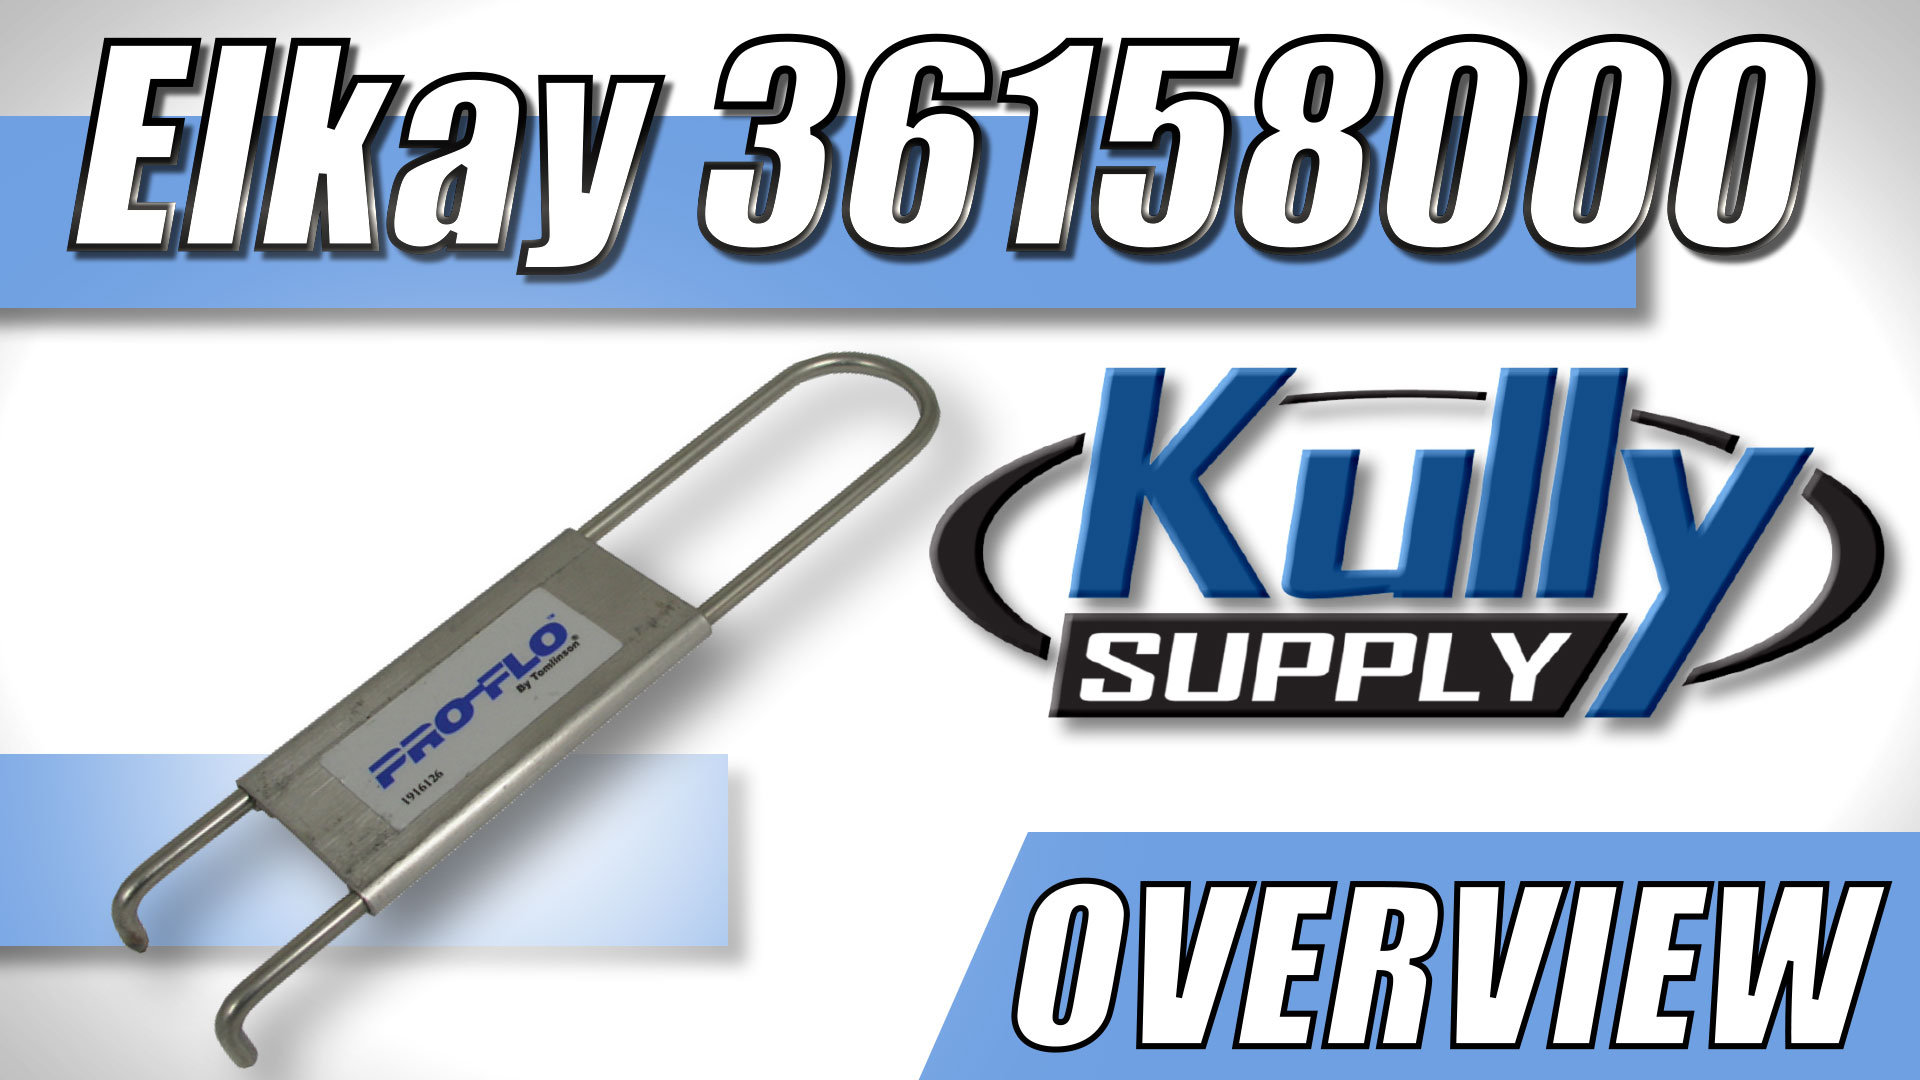 Overview Video: Elkay Spanner Wrench (36158000)